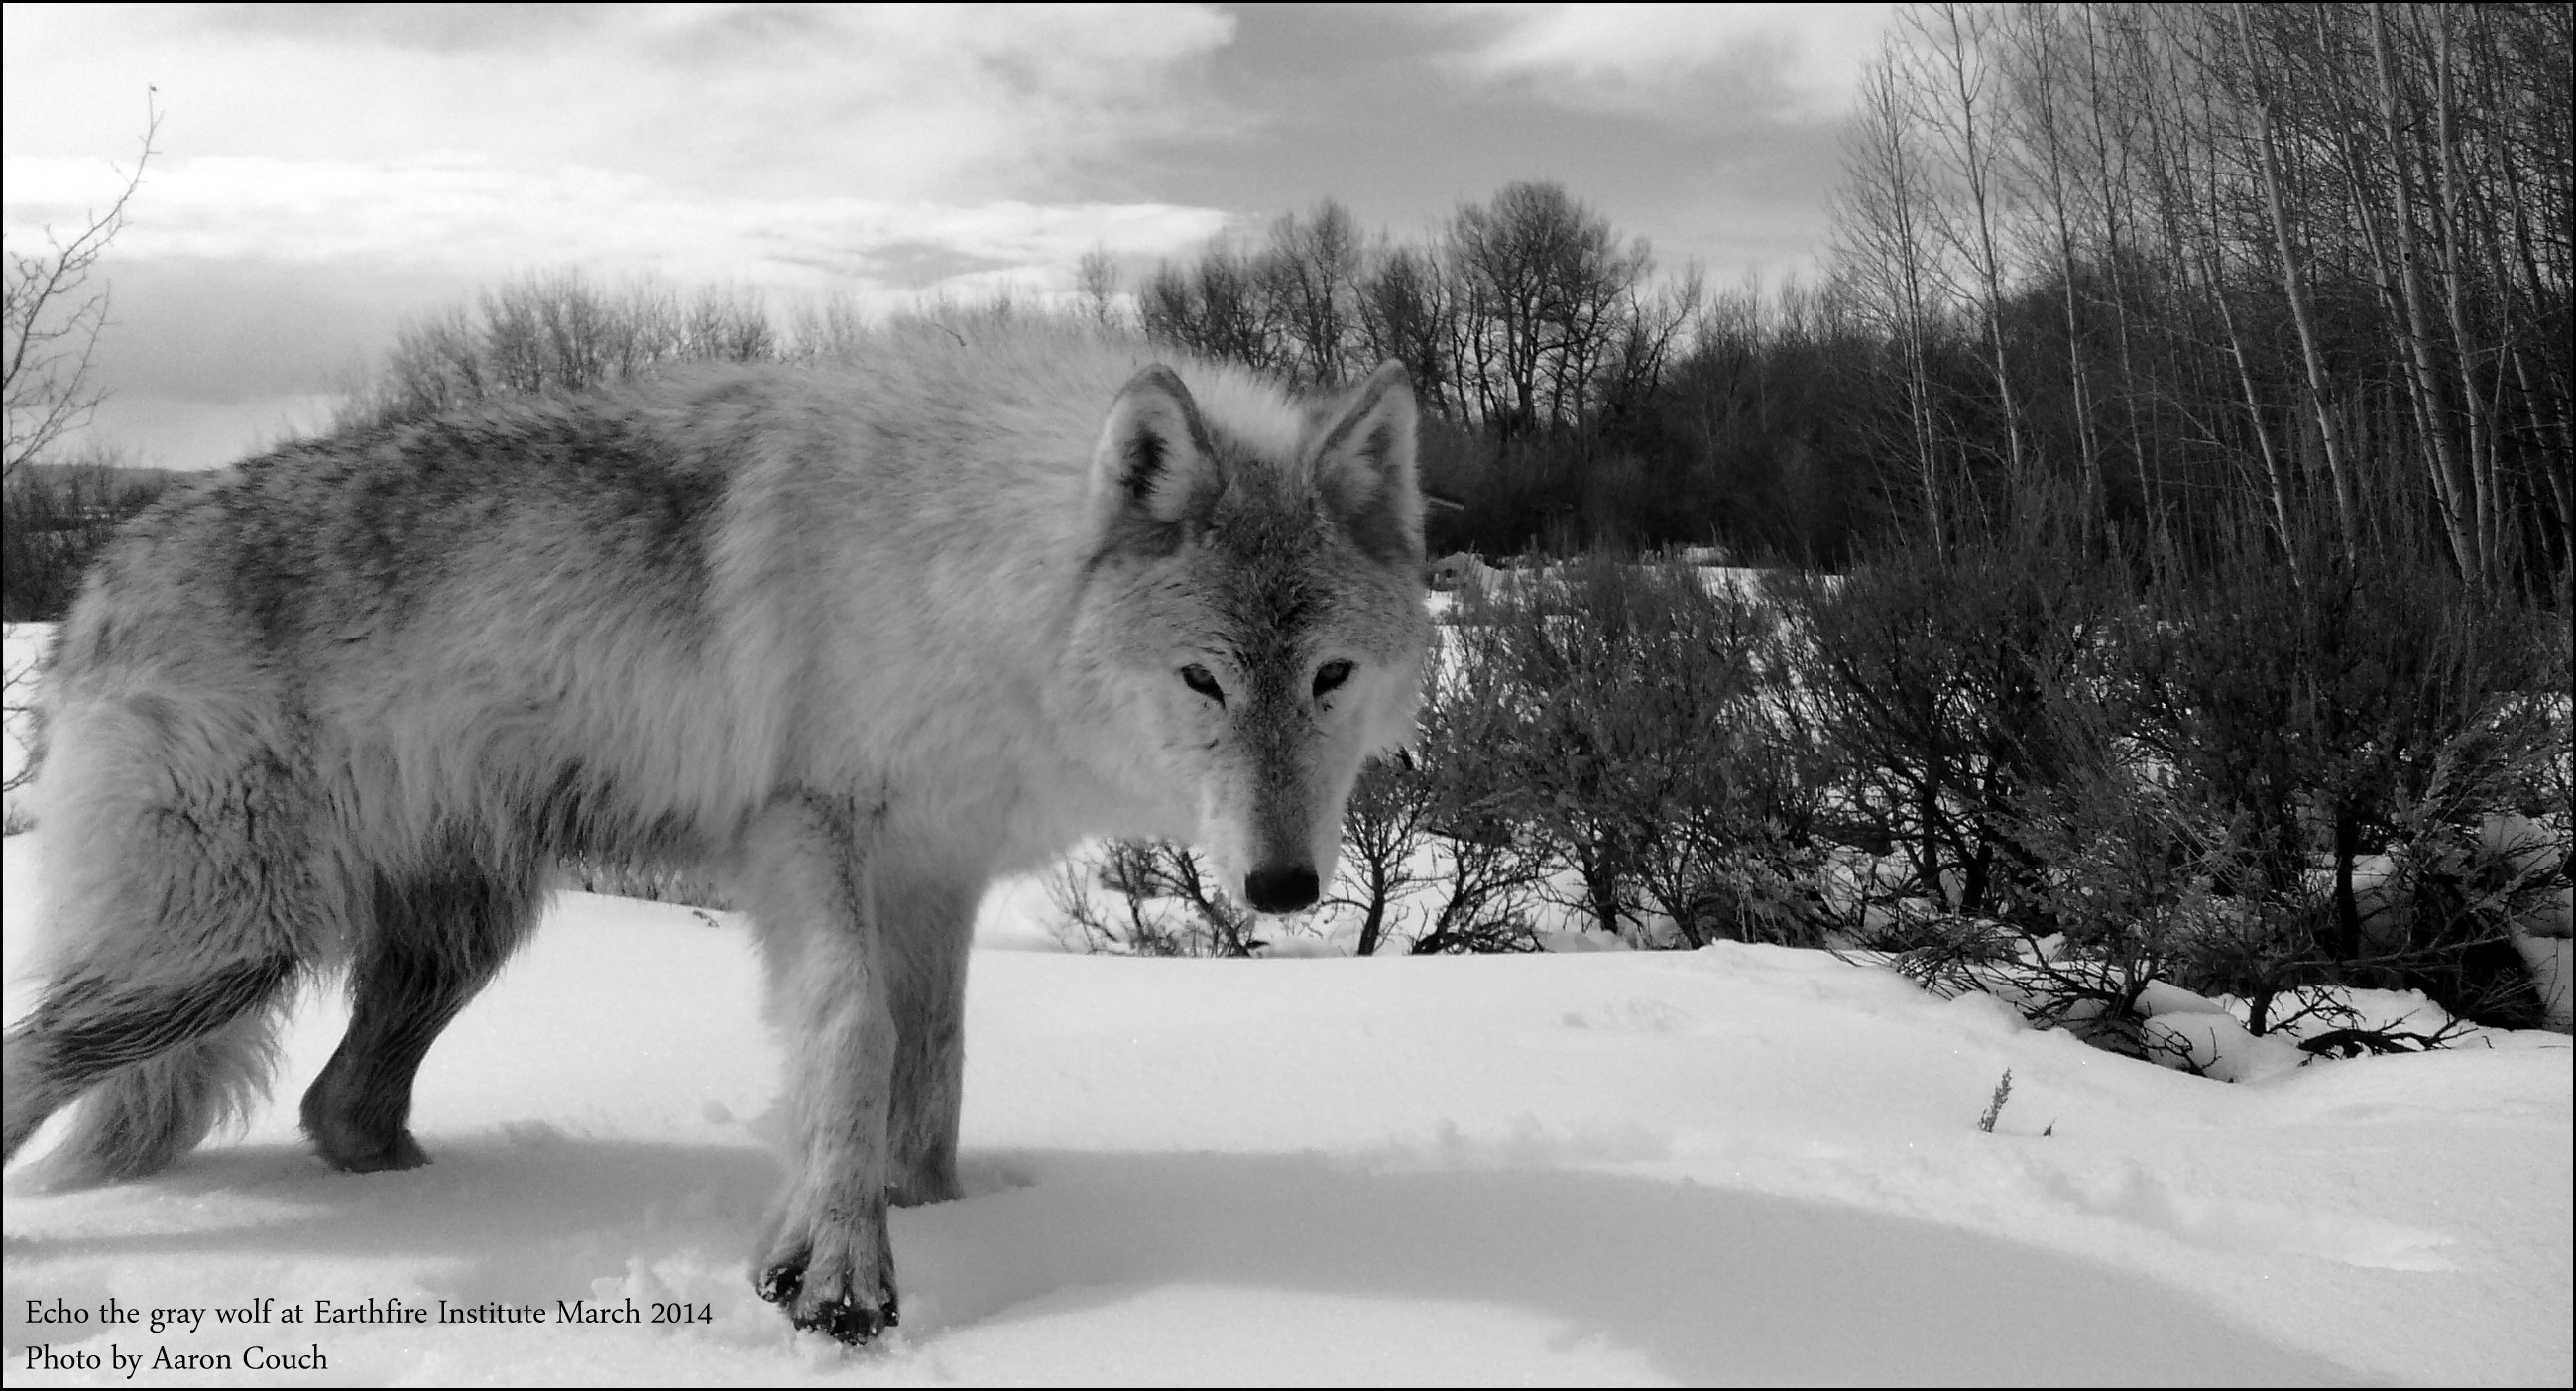 Echo the gray wolf – Earthfire Institute (March 2014)